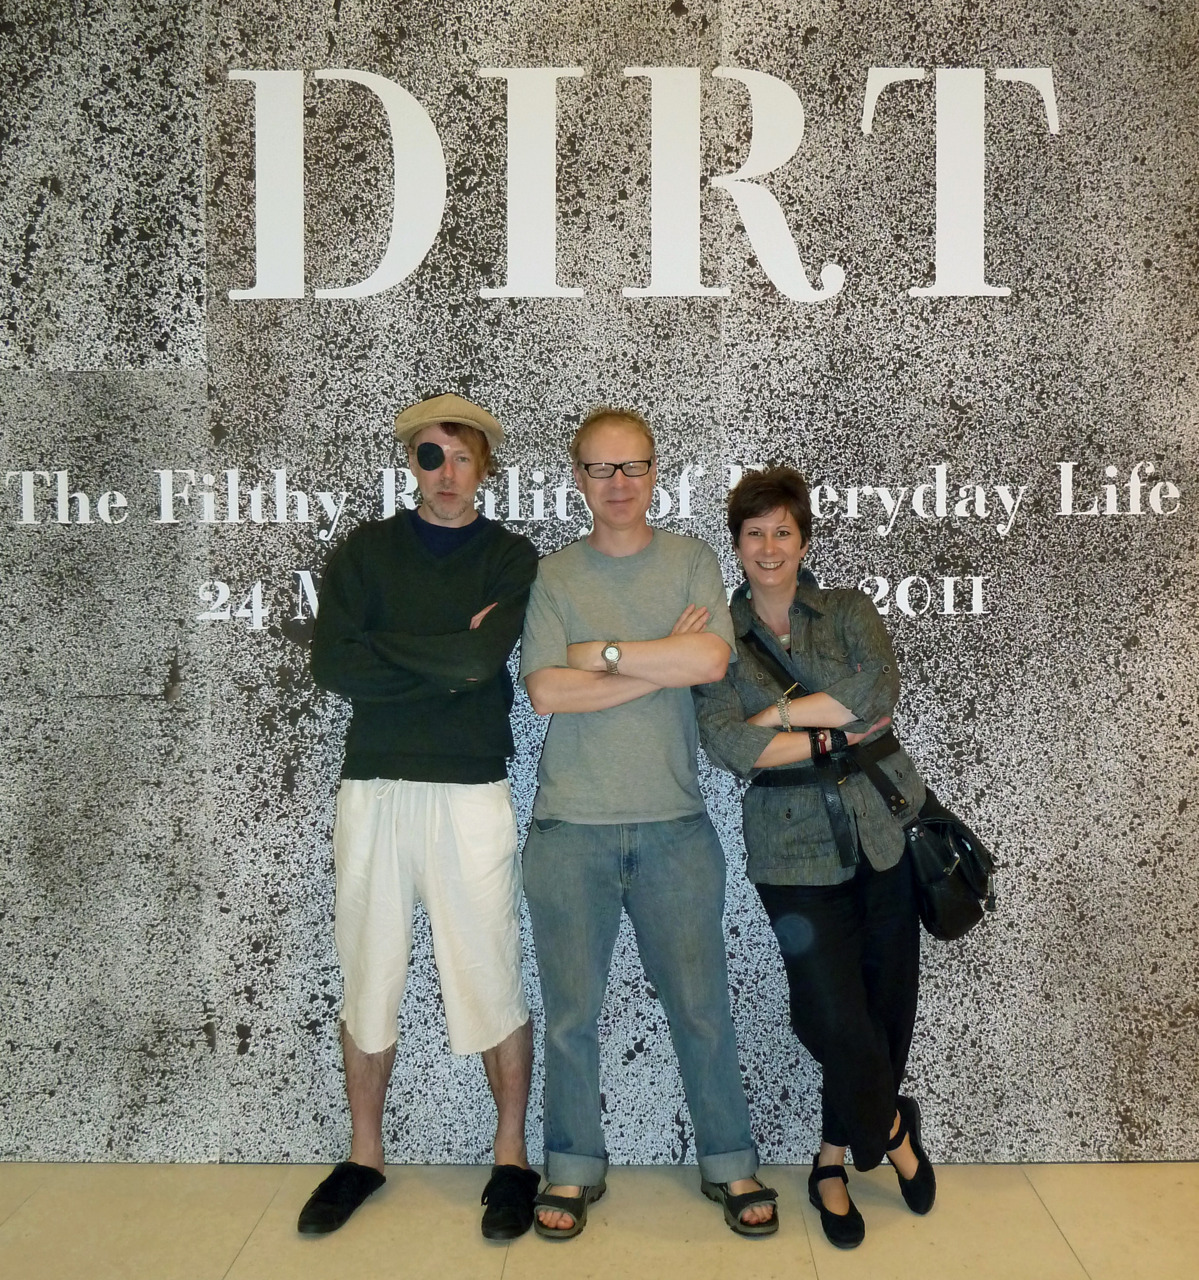 Some very clean and smiley people outside the Dirt exhibition at the Wellcome Collection last week. Great installations, including James Croak's 'dirt window', and a broom studded with precious stones by Susan Collis.